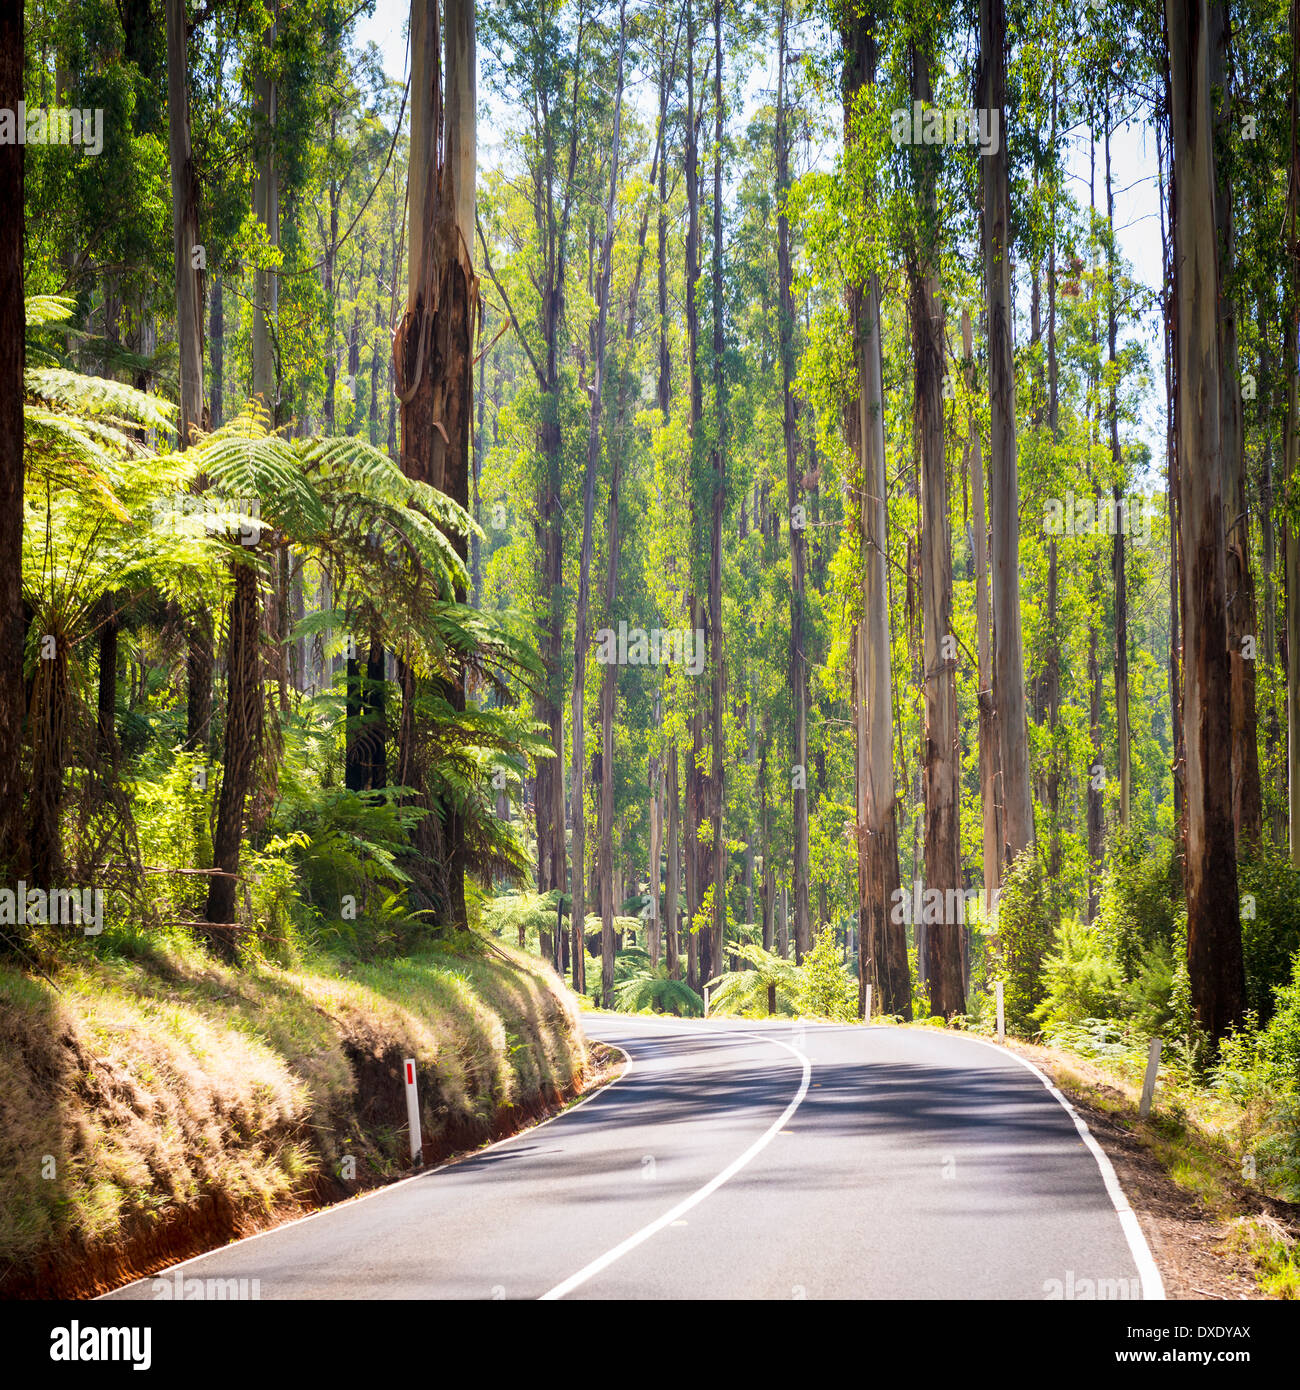 Towering trees and tree ferns in the forest along the Black Spur in the Yarra Valley, Victoria, Australia Stock Photo